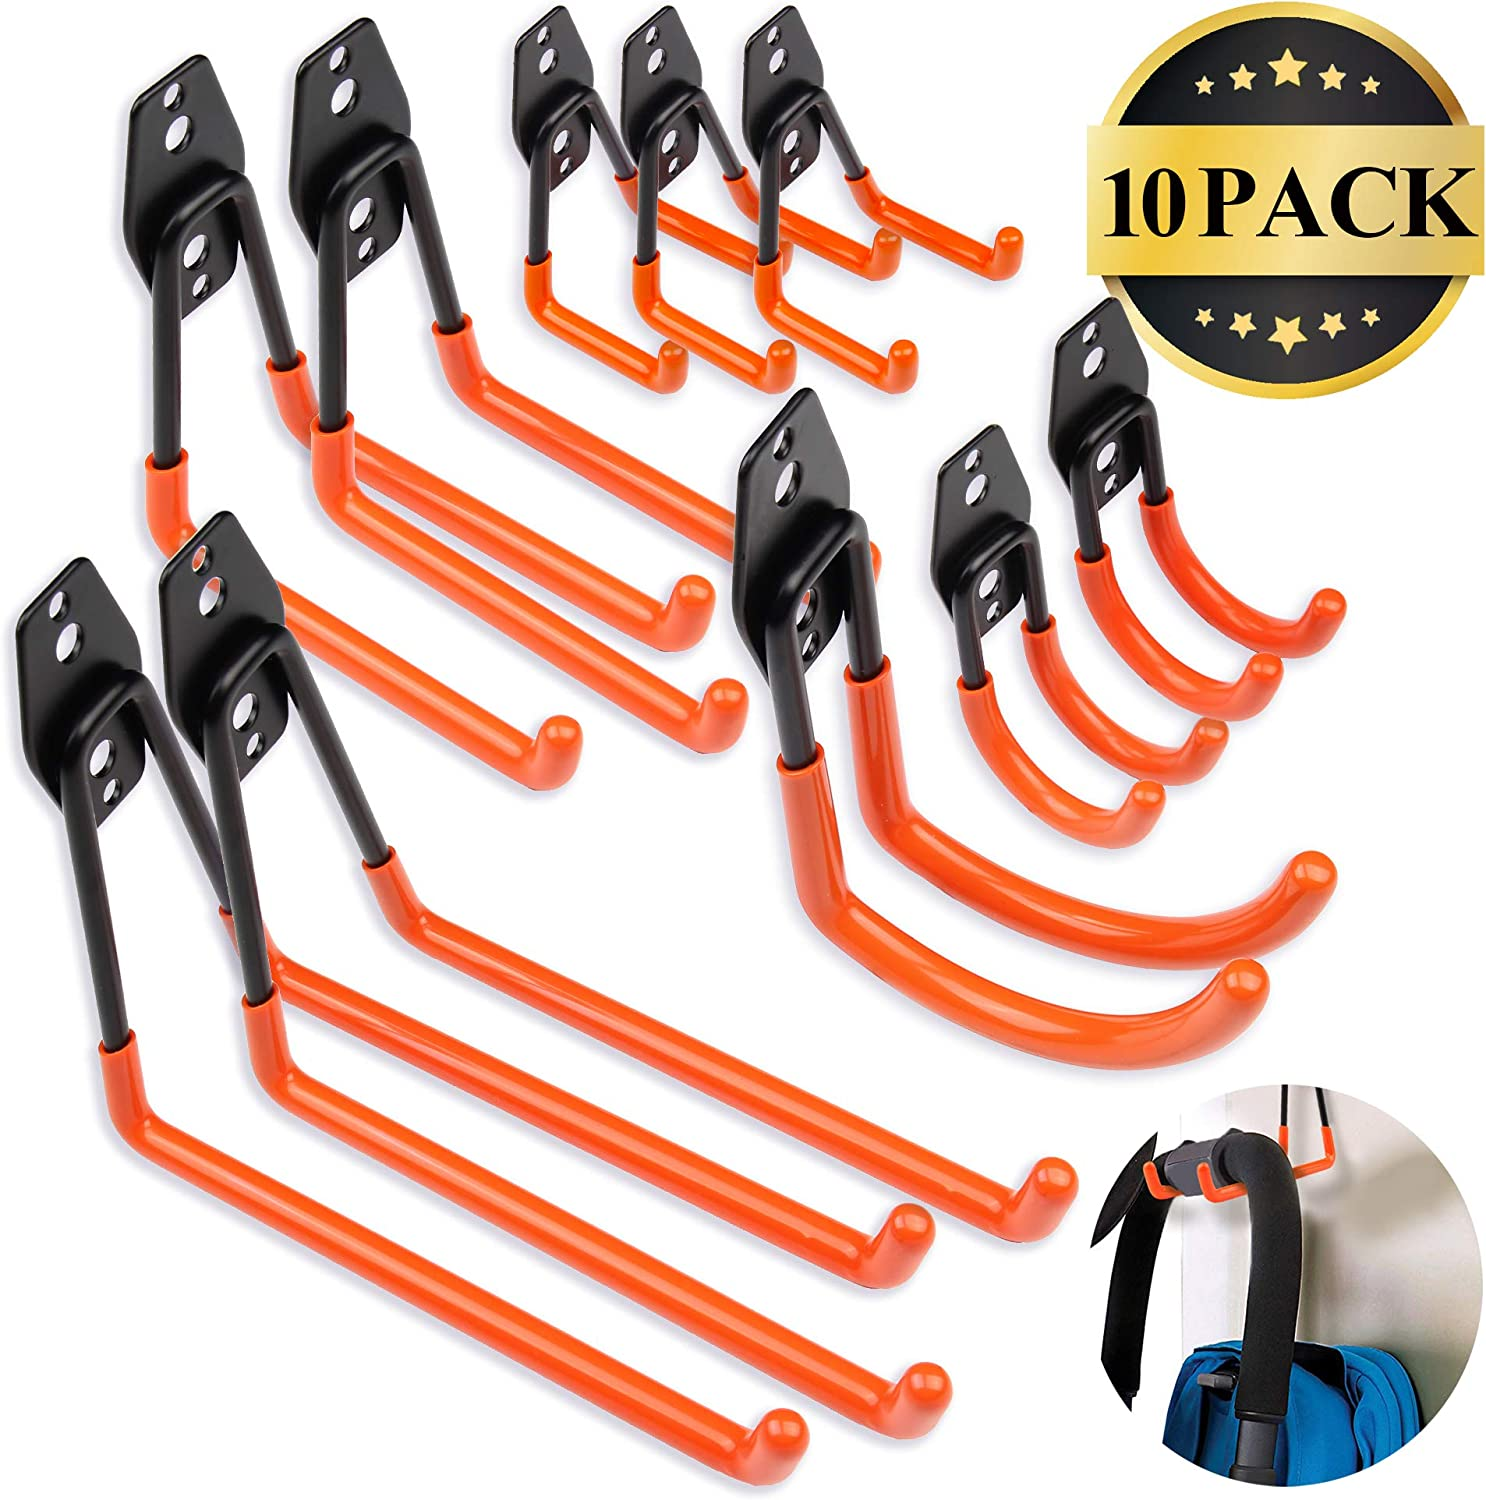 Steel Garage Storage Utility Double Hooks, Easy to Install Wall Mount Heavy Duty Hangers for Organizing Large Power Tools, Anti Slip Design Holding Ladders, Chairs, Bikes, Ropes, Bulk Items, 10 Pack